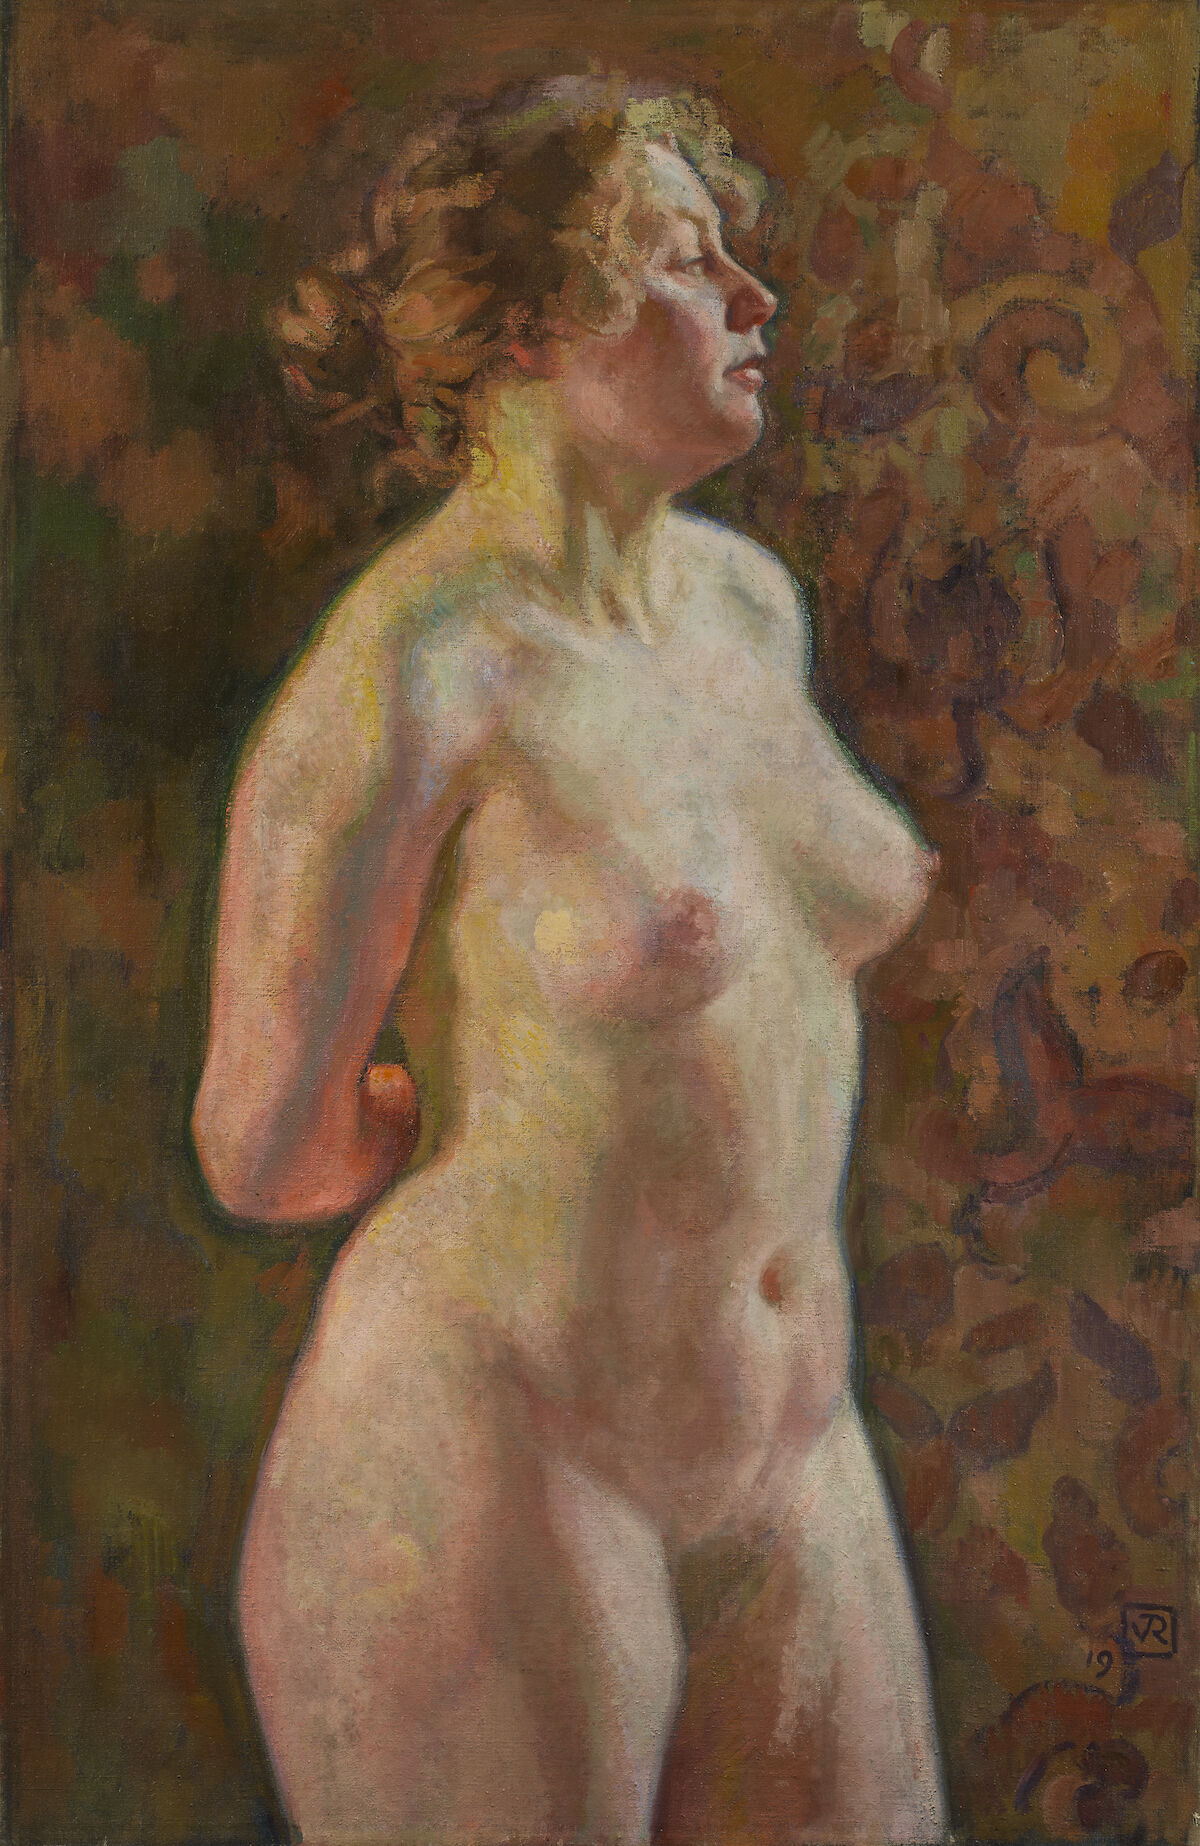 Théo van Rysselberghe, Torse de blonde (Blond Nude), 1919. Courtesy of Jack Kilgore & Co., Inc. and TEFAF New York.